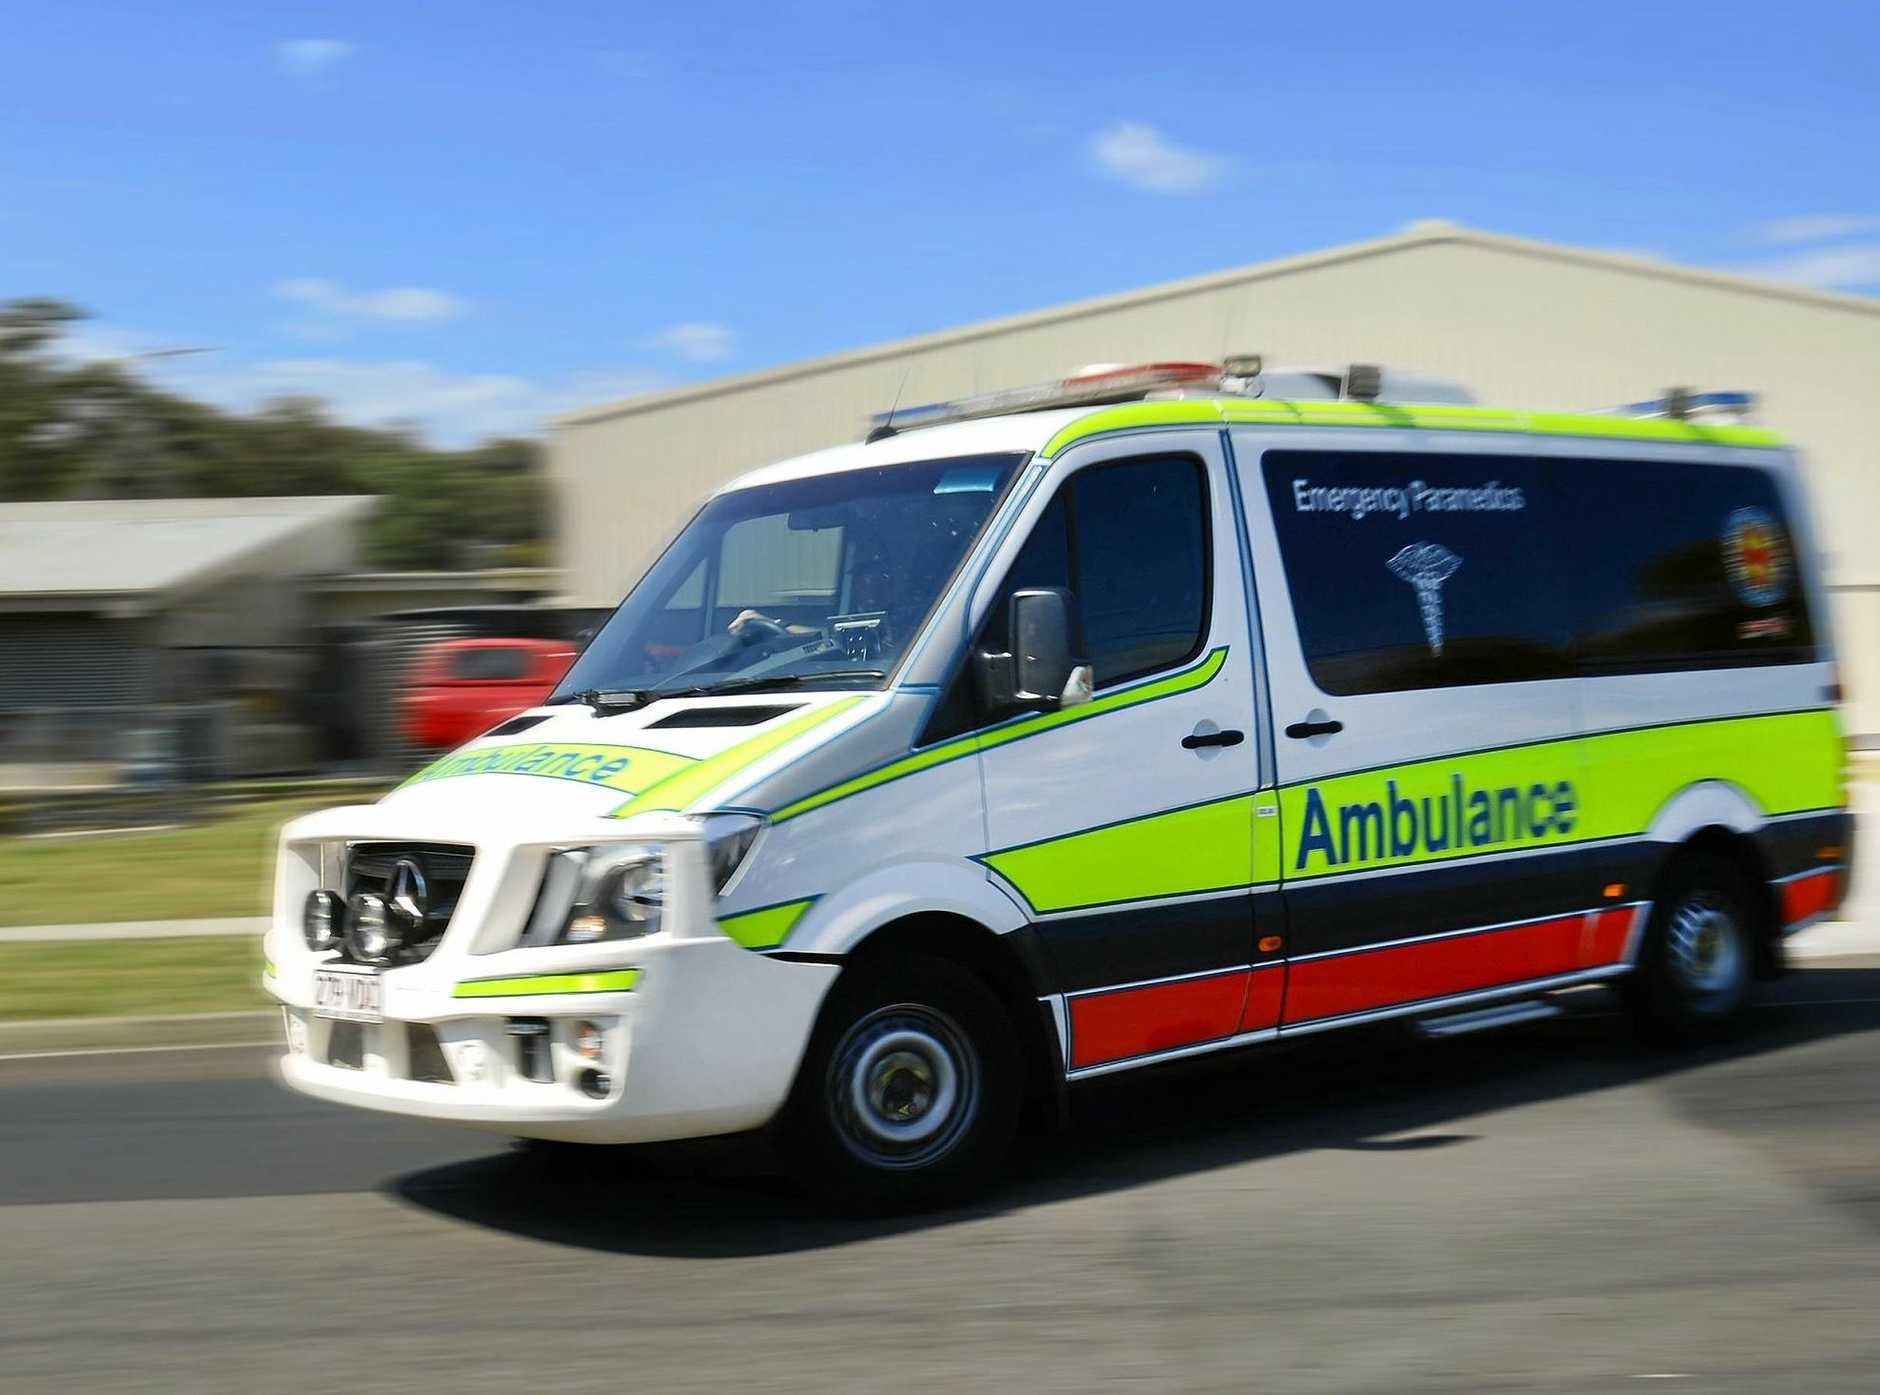 A young boy was hospitalised after being pulled from a pool at Mudjimba.